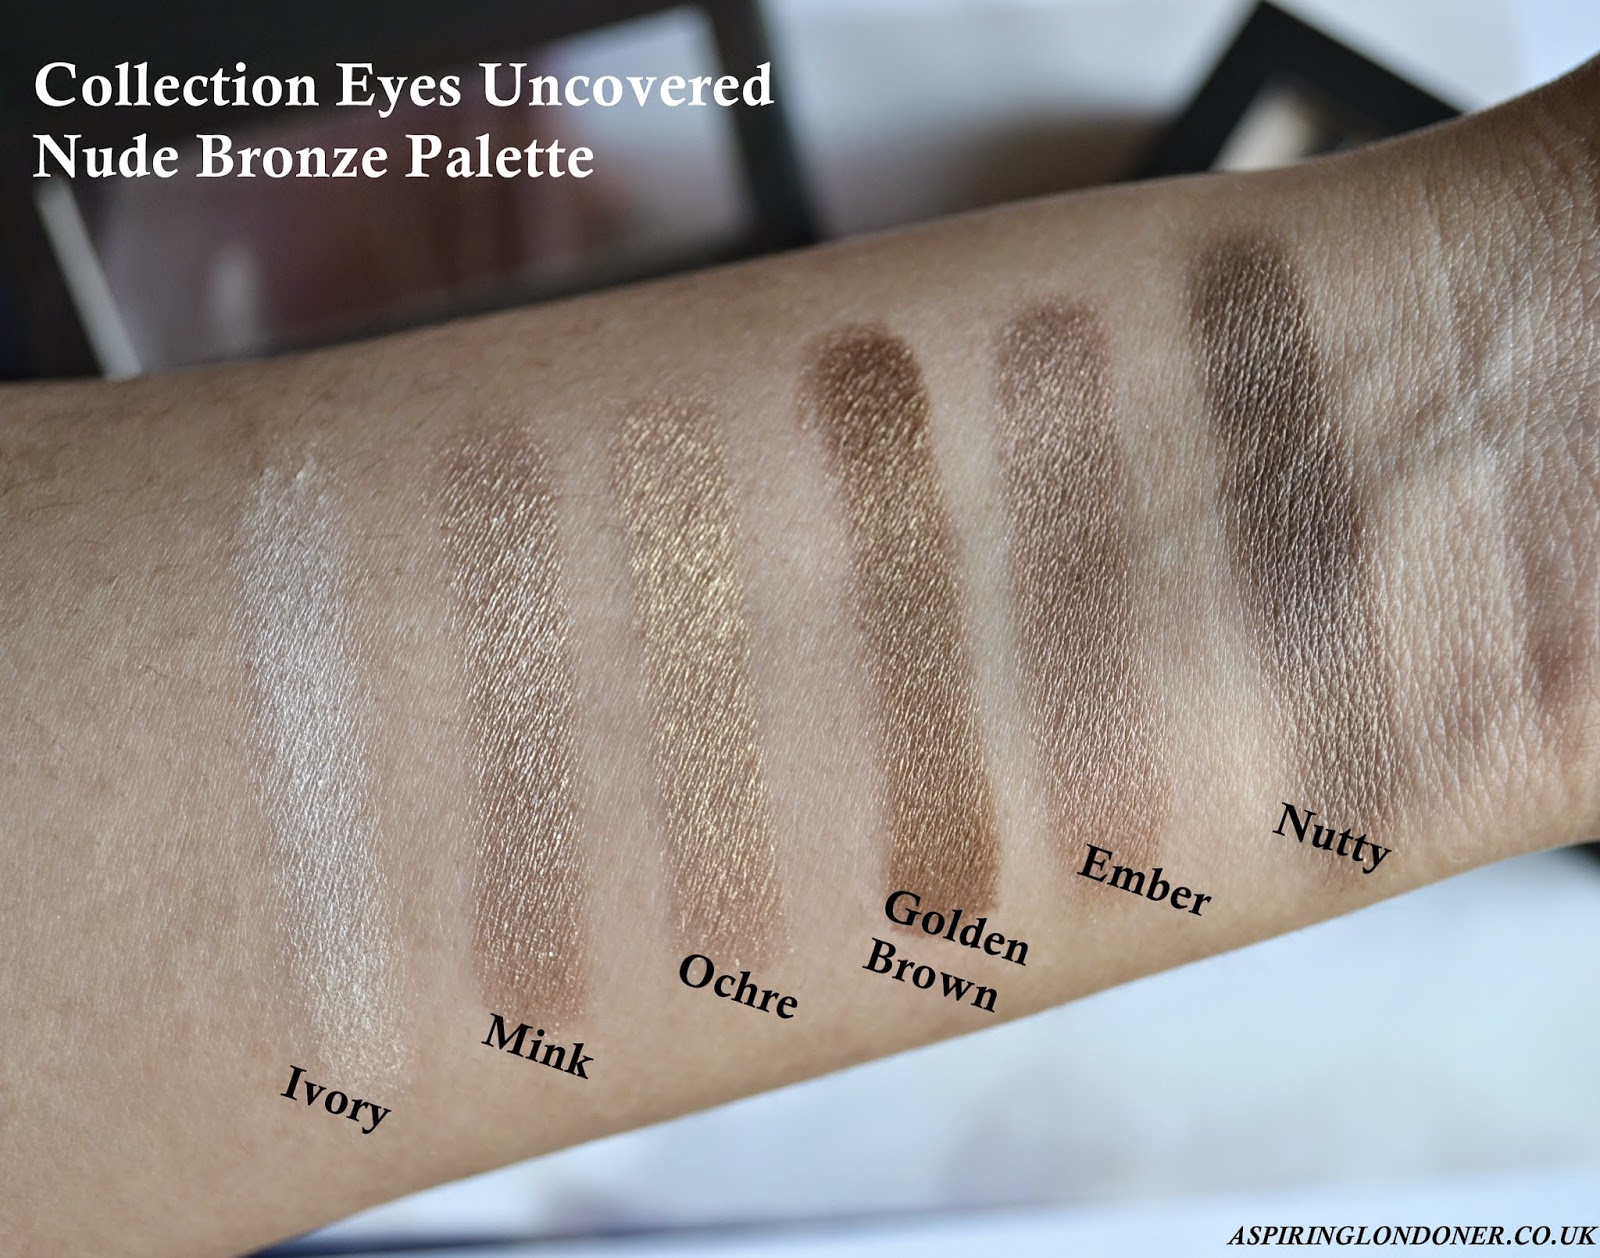 Collection Eyes Uncovered Nude Bronze Palette Swatches - Aspiring Londoner